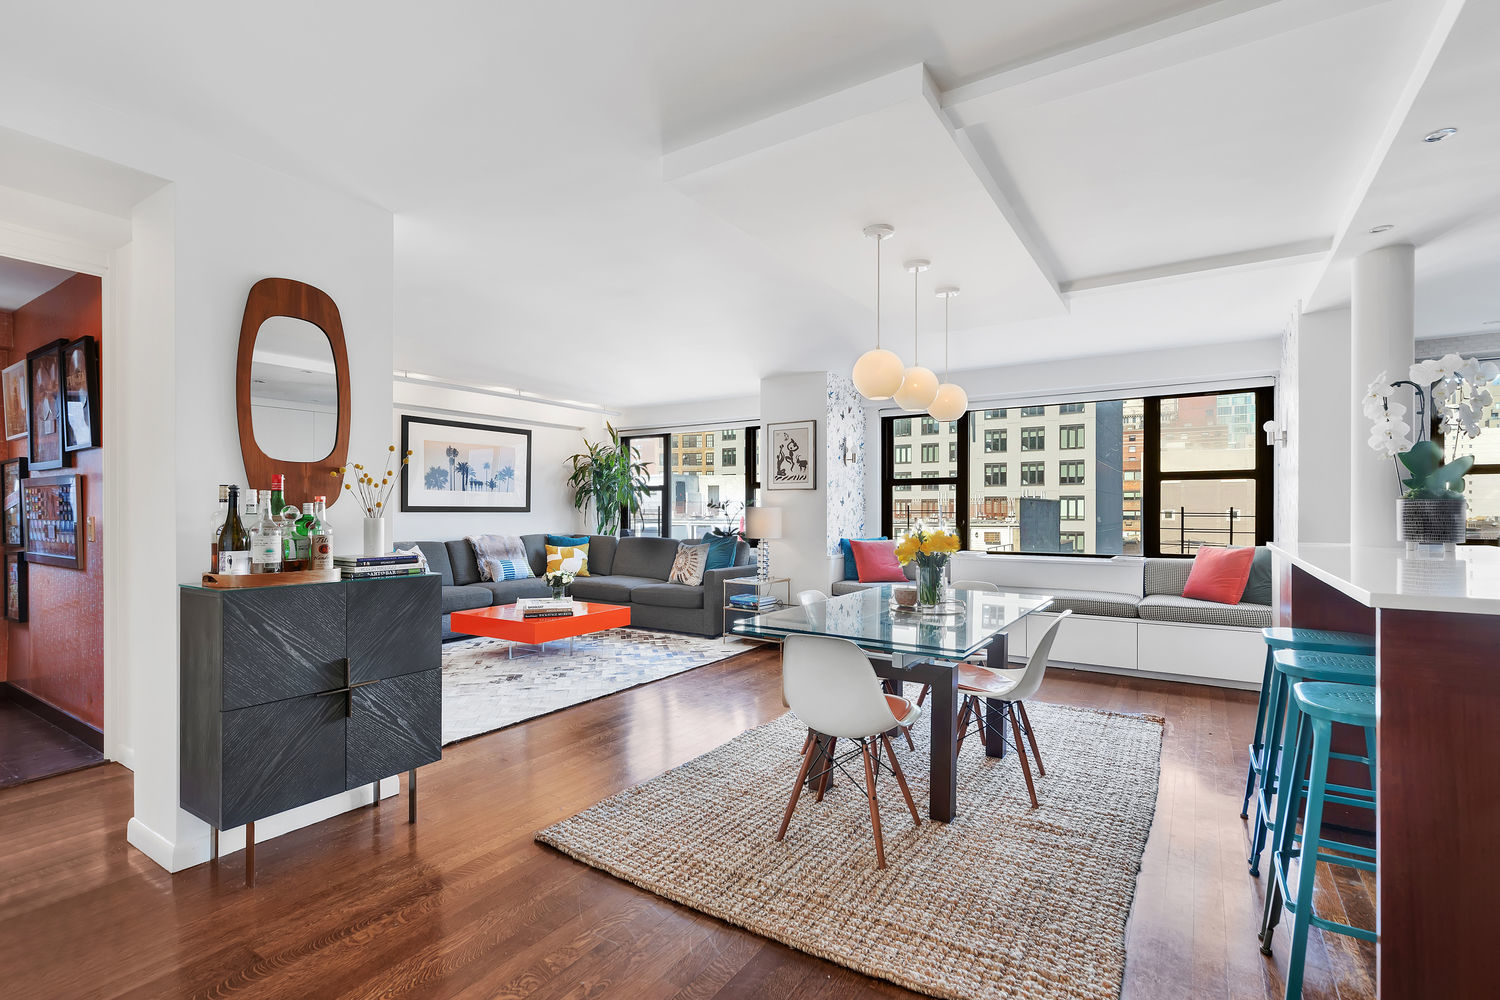 Apartment for sale at 115 East 9th Street, Apt 9KLM